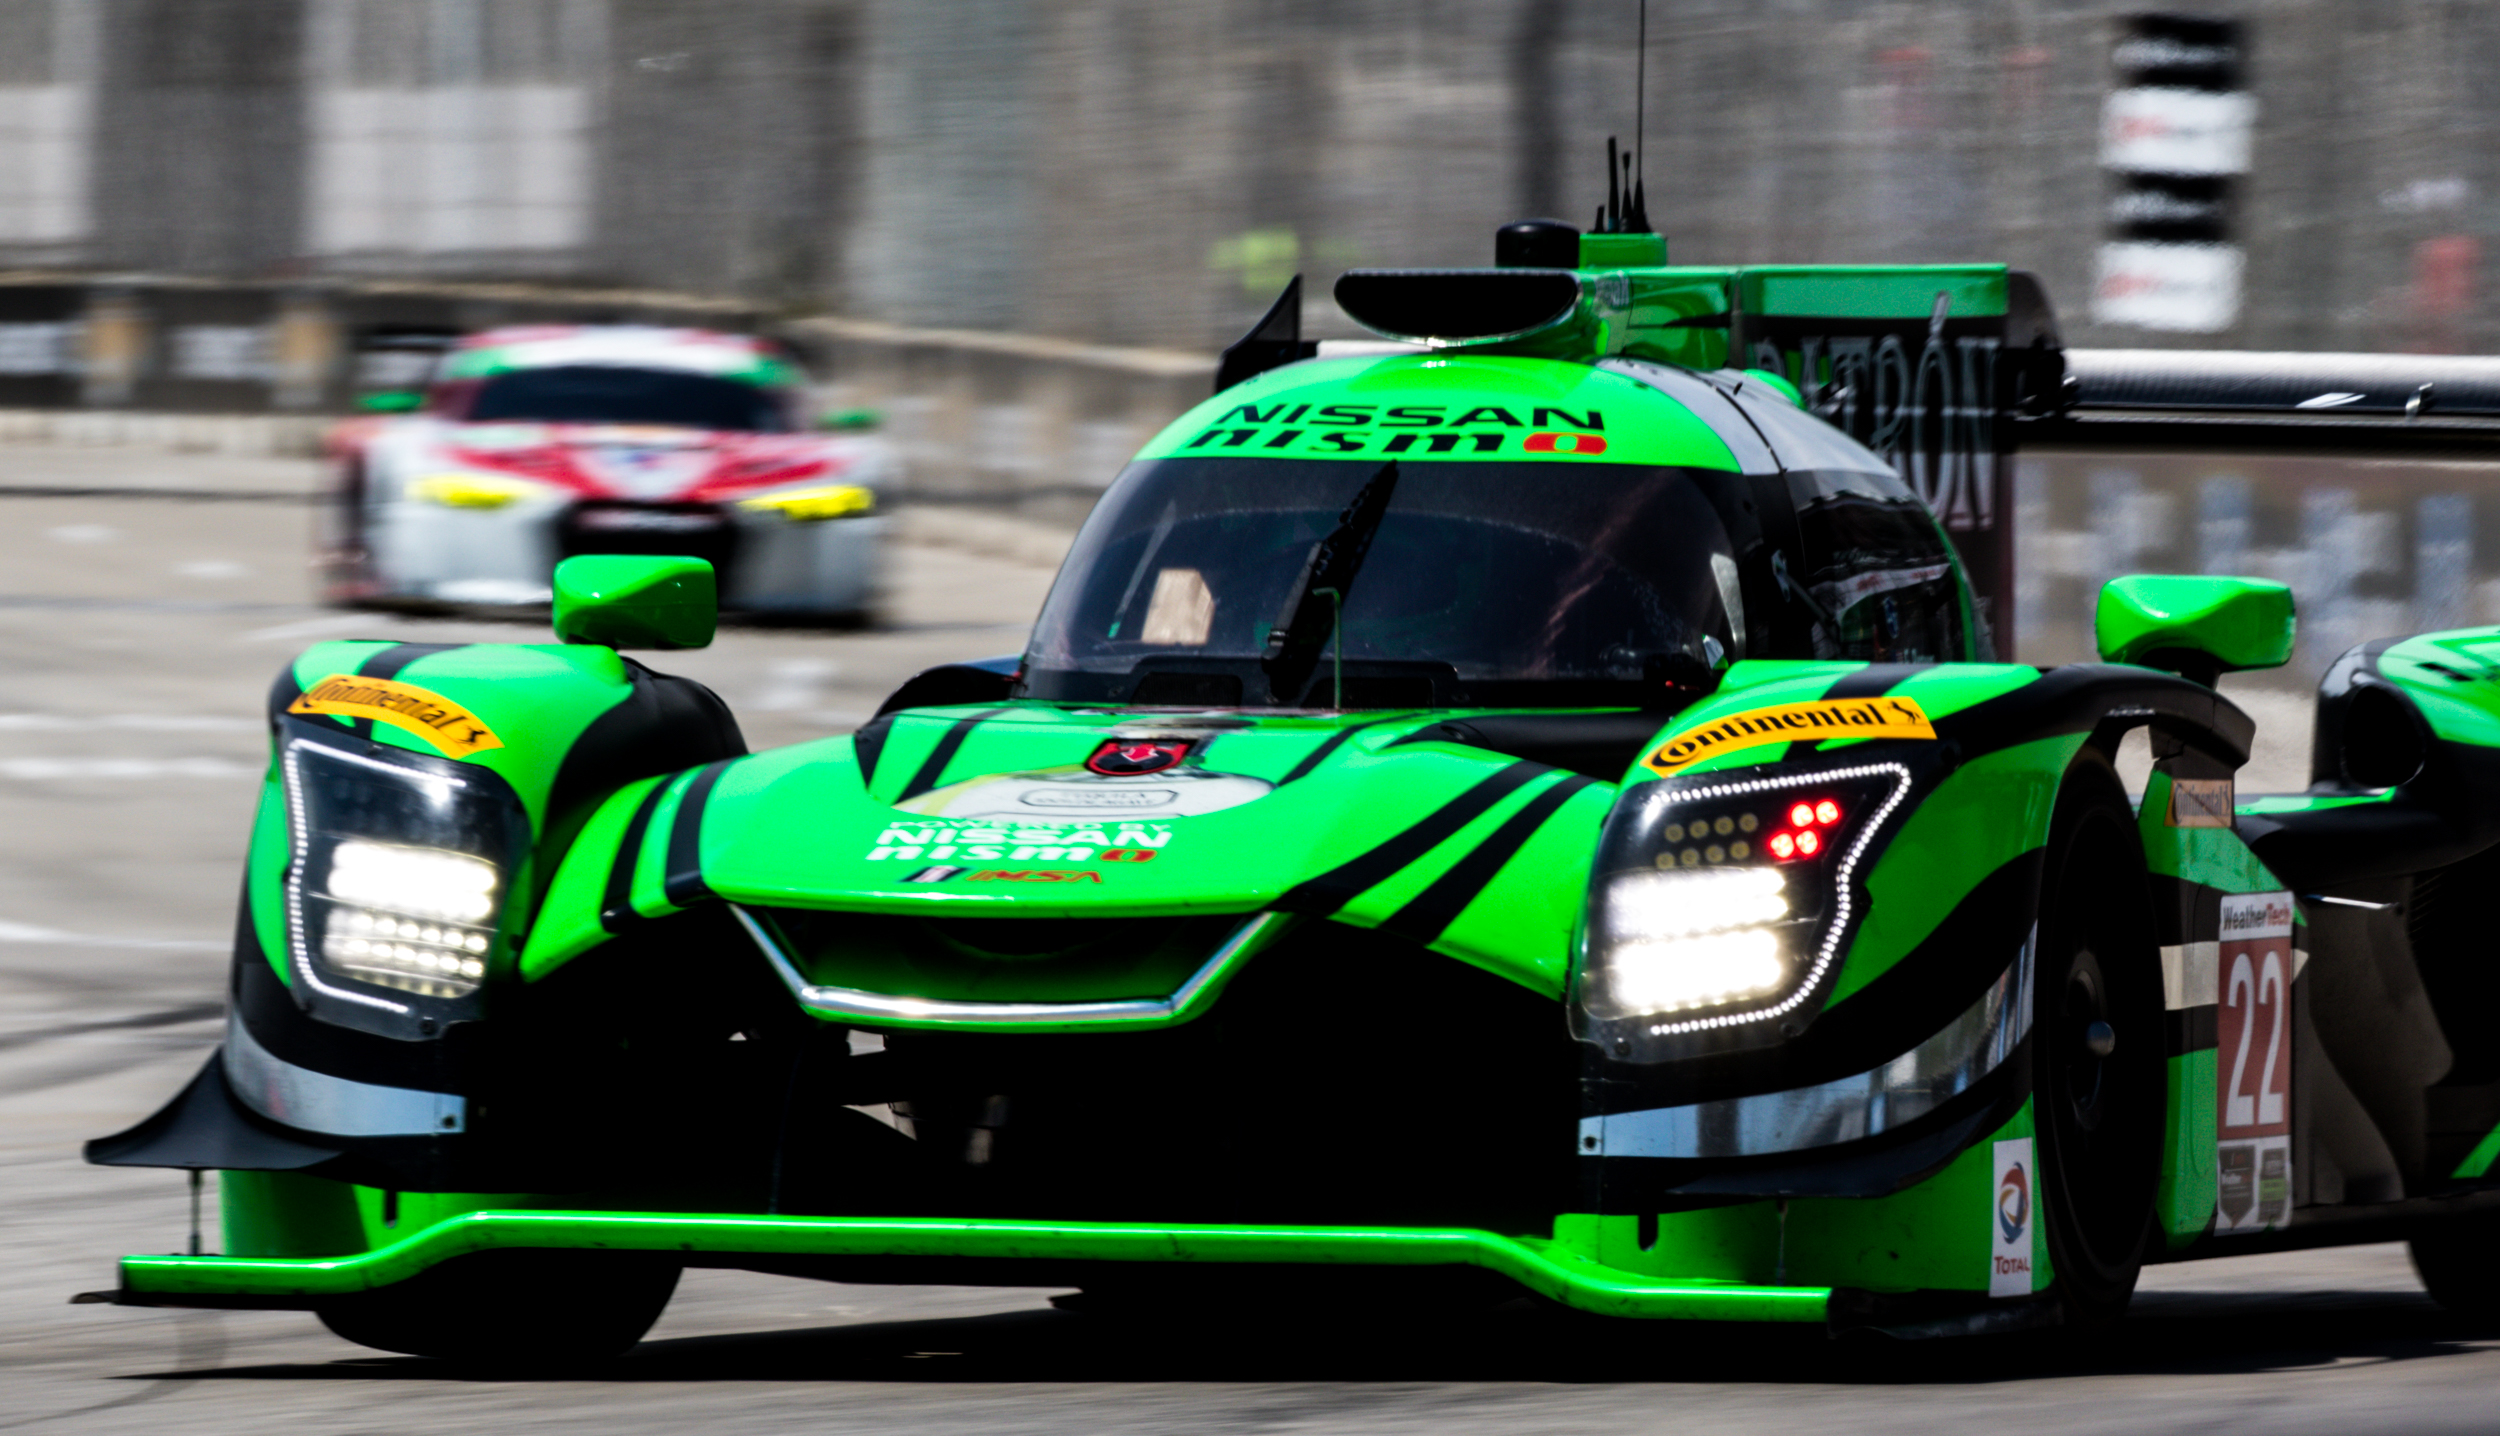 Ed Brown Forced to Withdraw from Tequila Patrón ESM's Watkins Glen Campaign